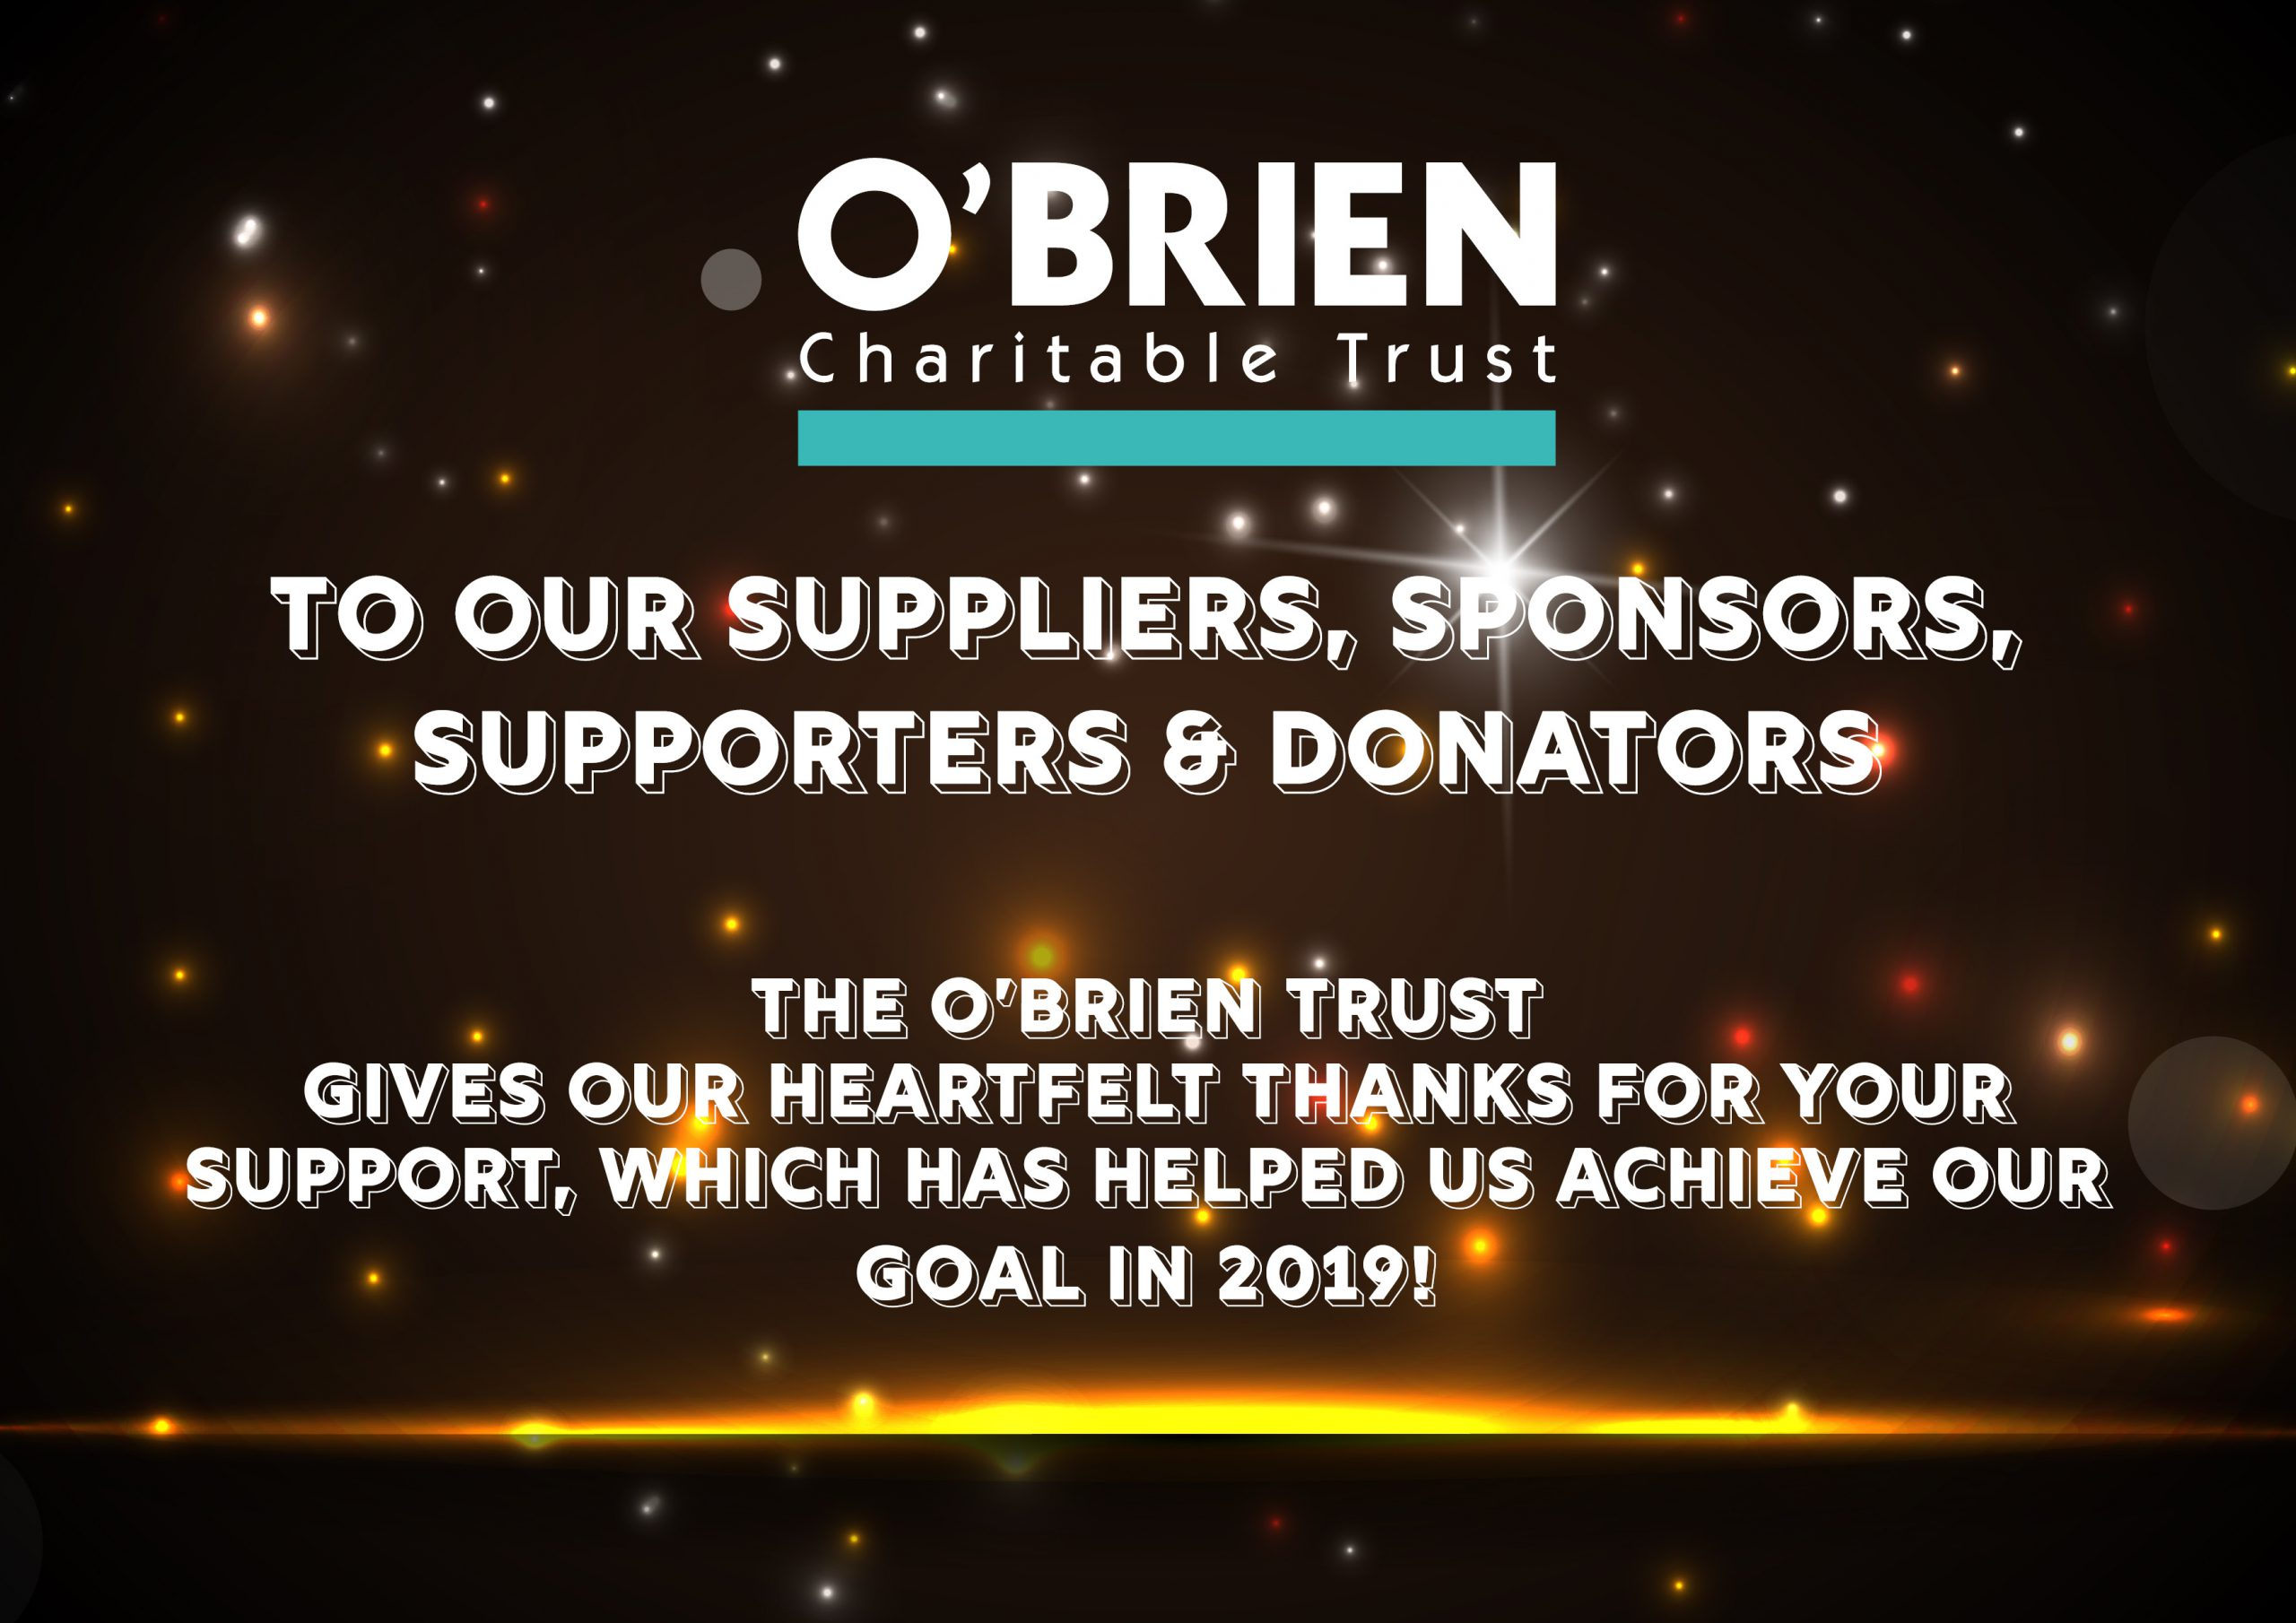 O'Brien Charitable Trust – 2019 £15,000 Target Reached and Mission Accomplished!